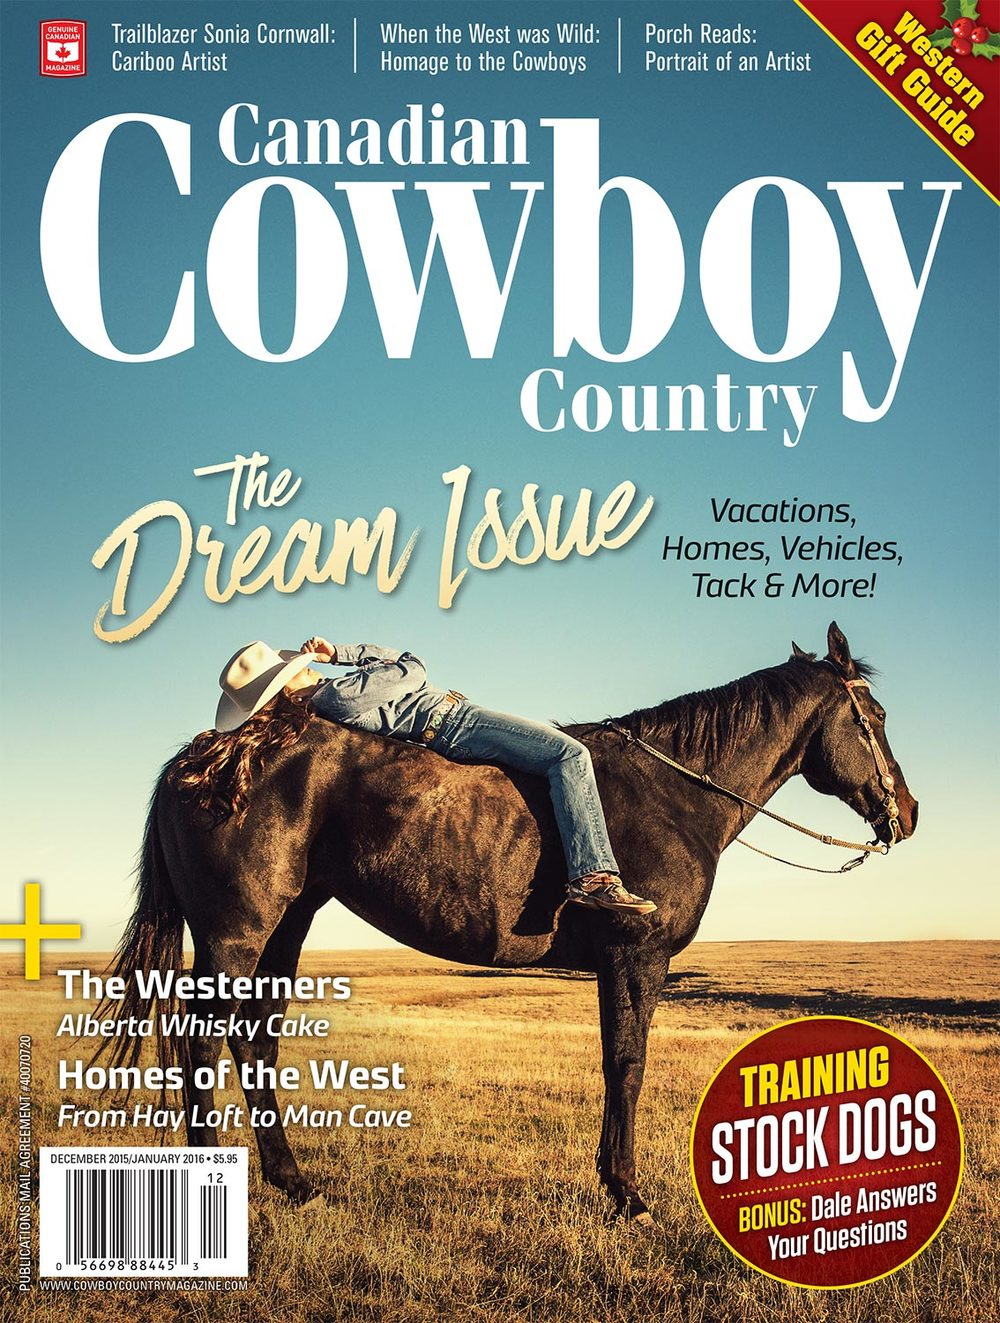 Canadian Cowboy Country Cover Photo